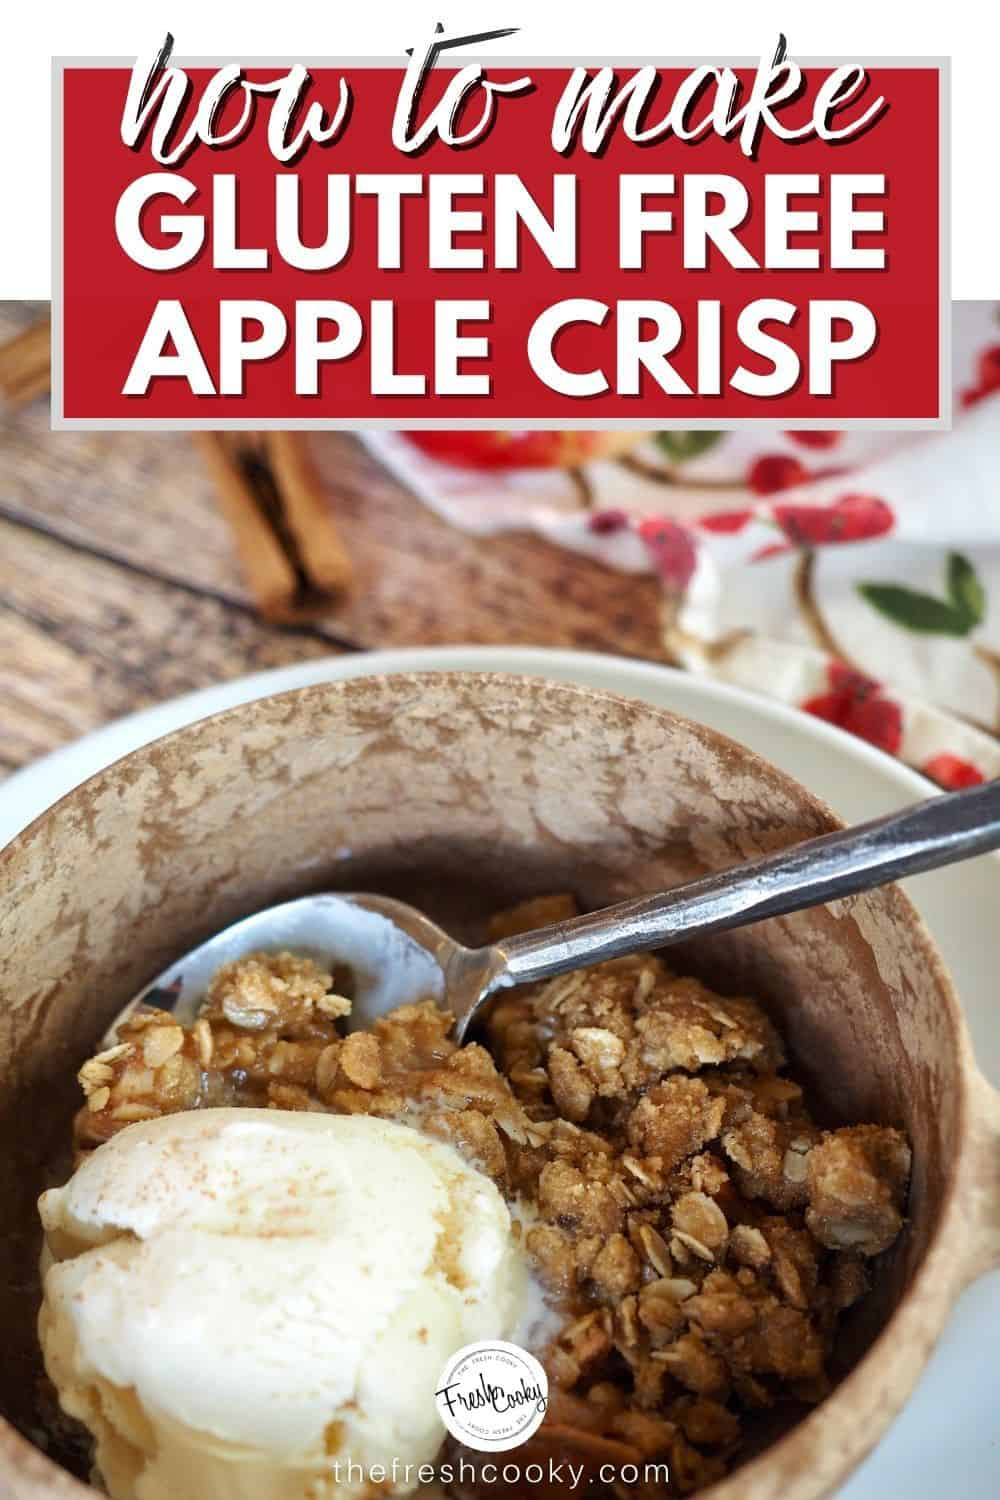 This is the fall dessert you want to make this weekend. The best old fashioned apple crisp, sweet tender, apples with a lighter brown sugar buttery crisp topping. Gluten free and vegan options. #thefreshcooky #bestapplecrisp #falldesserts via @thefreshcooky